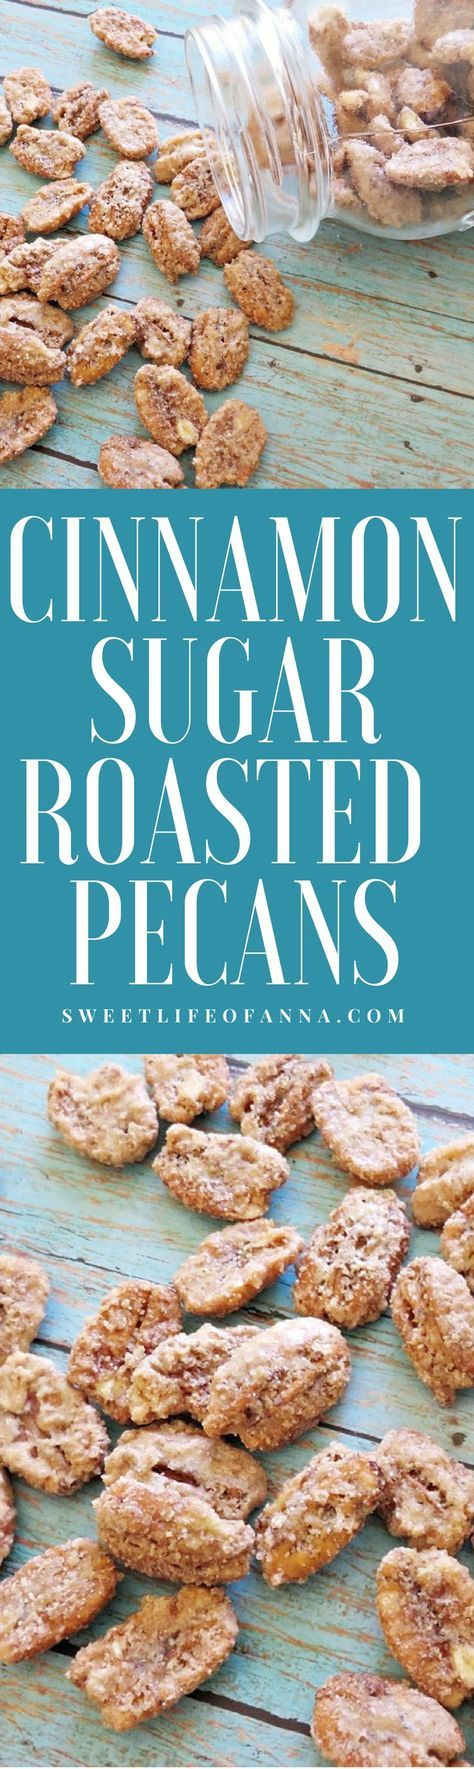 Cinnamon Sugar Roasted Pecans. These taste like the pecans you find at the fair or malls.